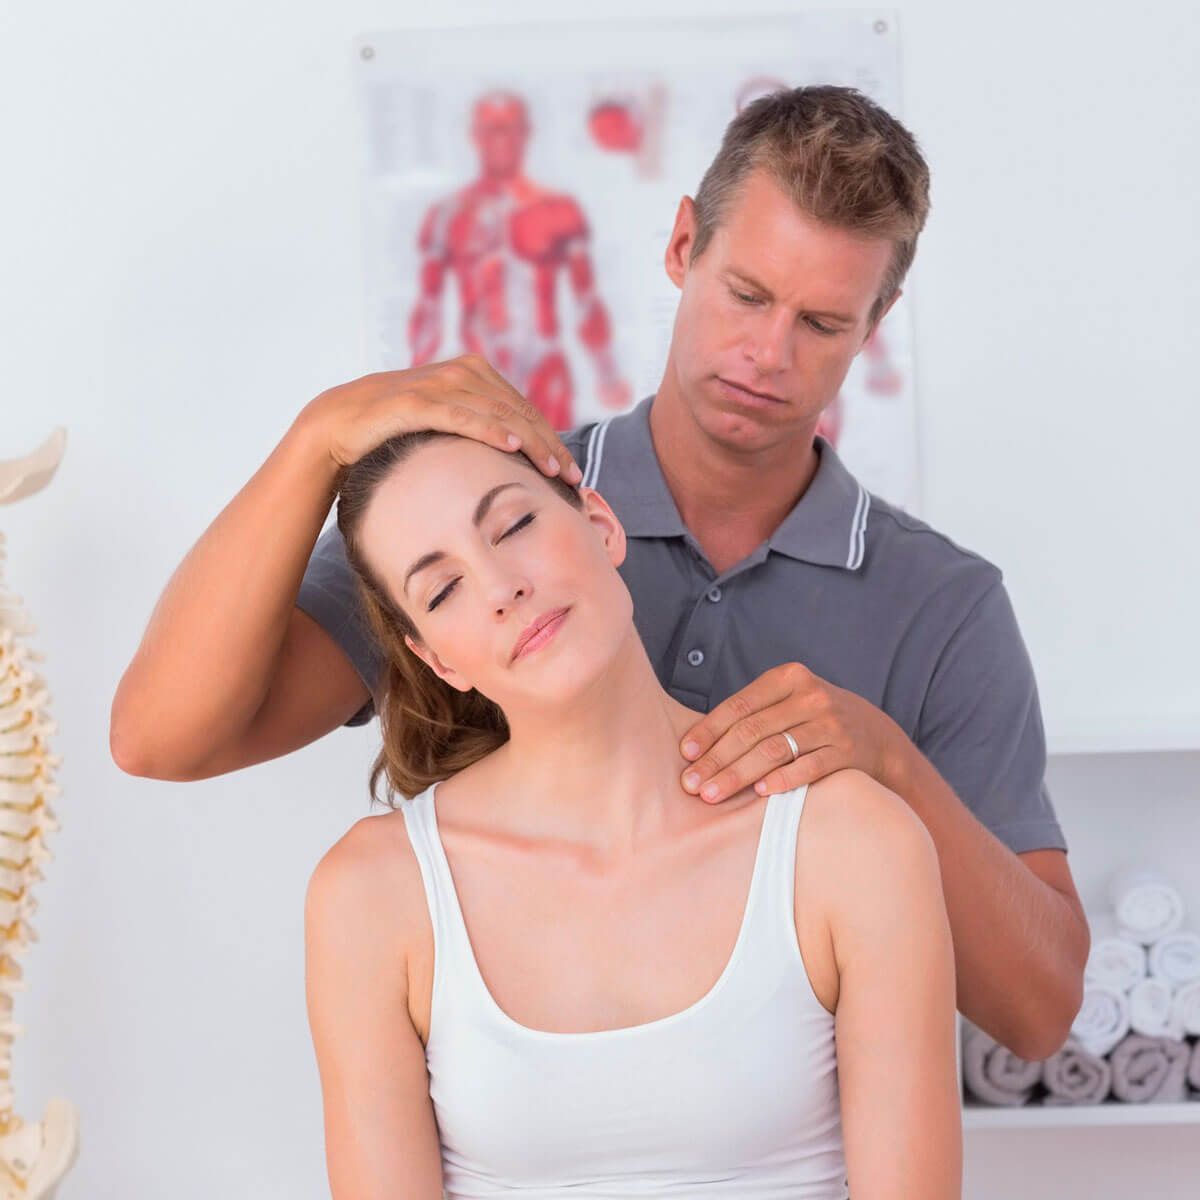 Essential Chiropractic and Healthcare Clinic - Gonstead Chiropractic Neck Adjustment Chiropractic Health